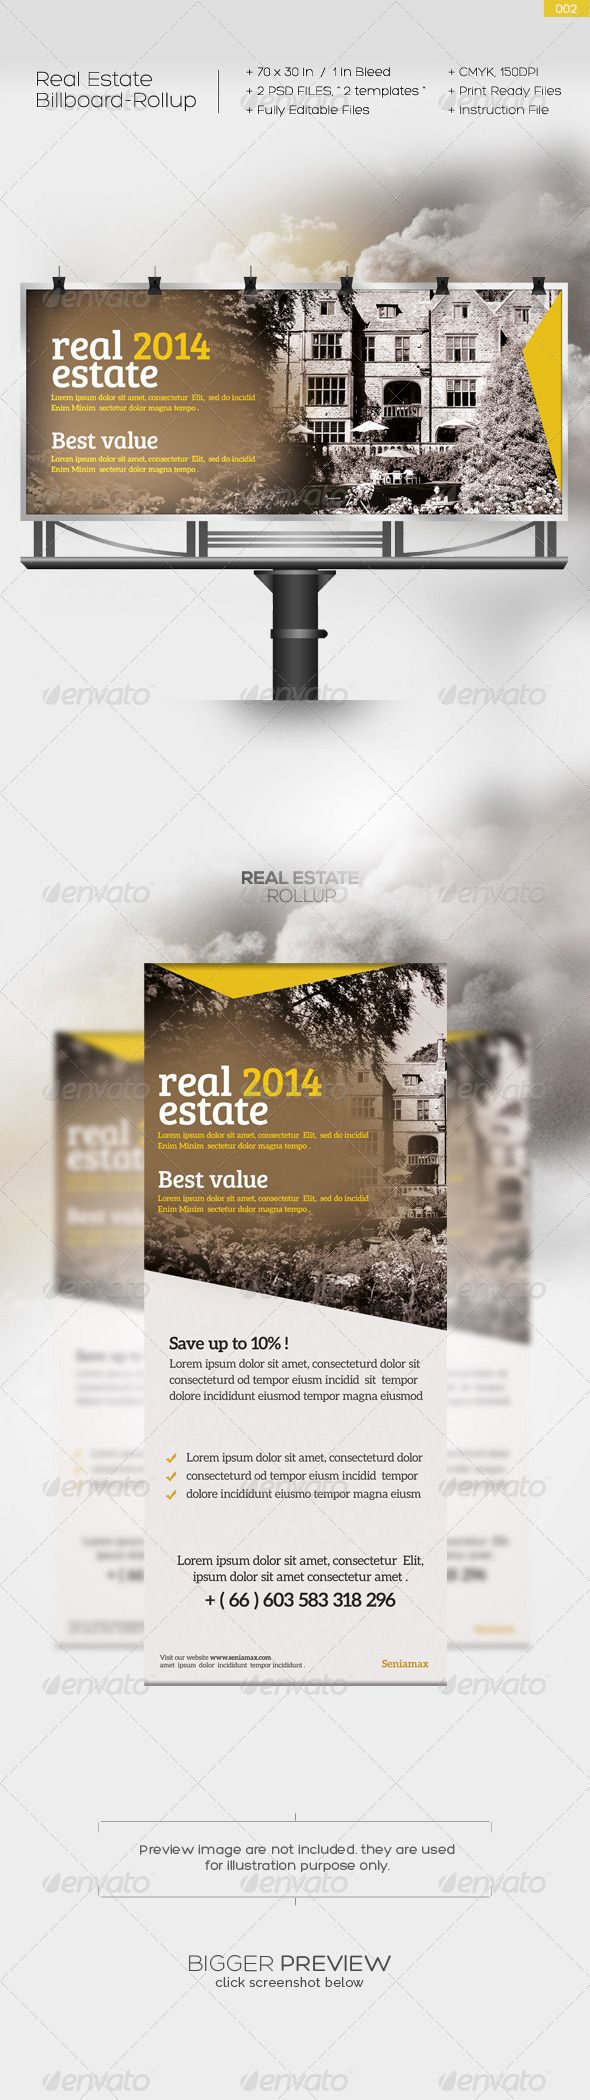 Real Estate Billboard Design Samples - Real estate billboard 002 real estate billboard template design